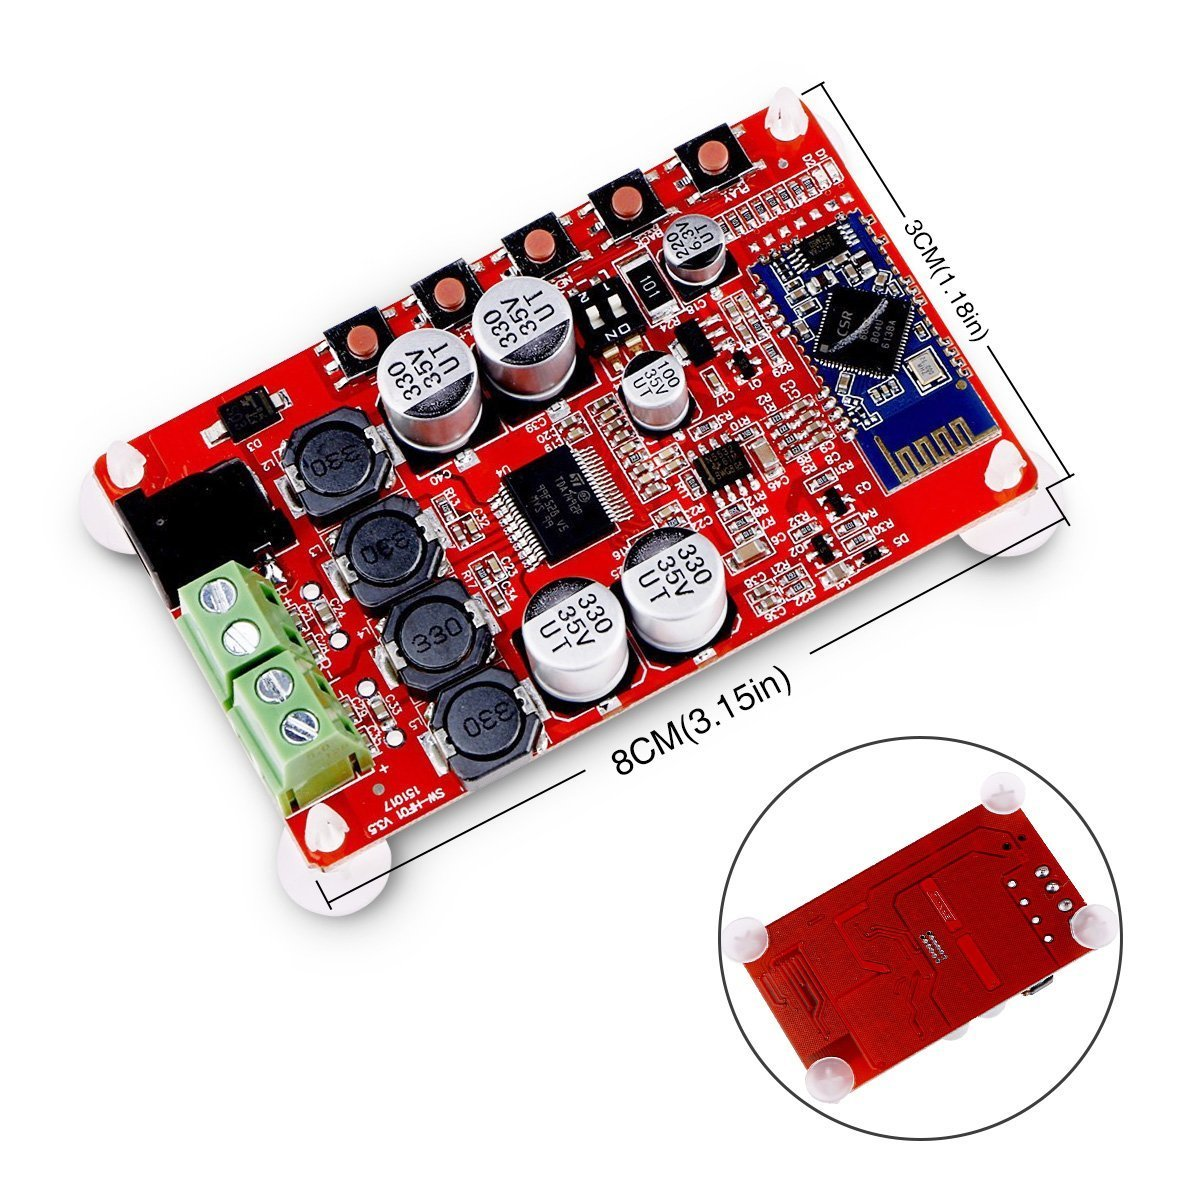 Insma Amplifier Board Tda7492p Audio Receiver Amplifiers Stereo Amp 2 Channel Subwoofer Circuit Diy Module 25w Dual Electronics